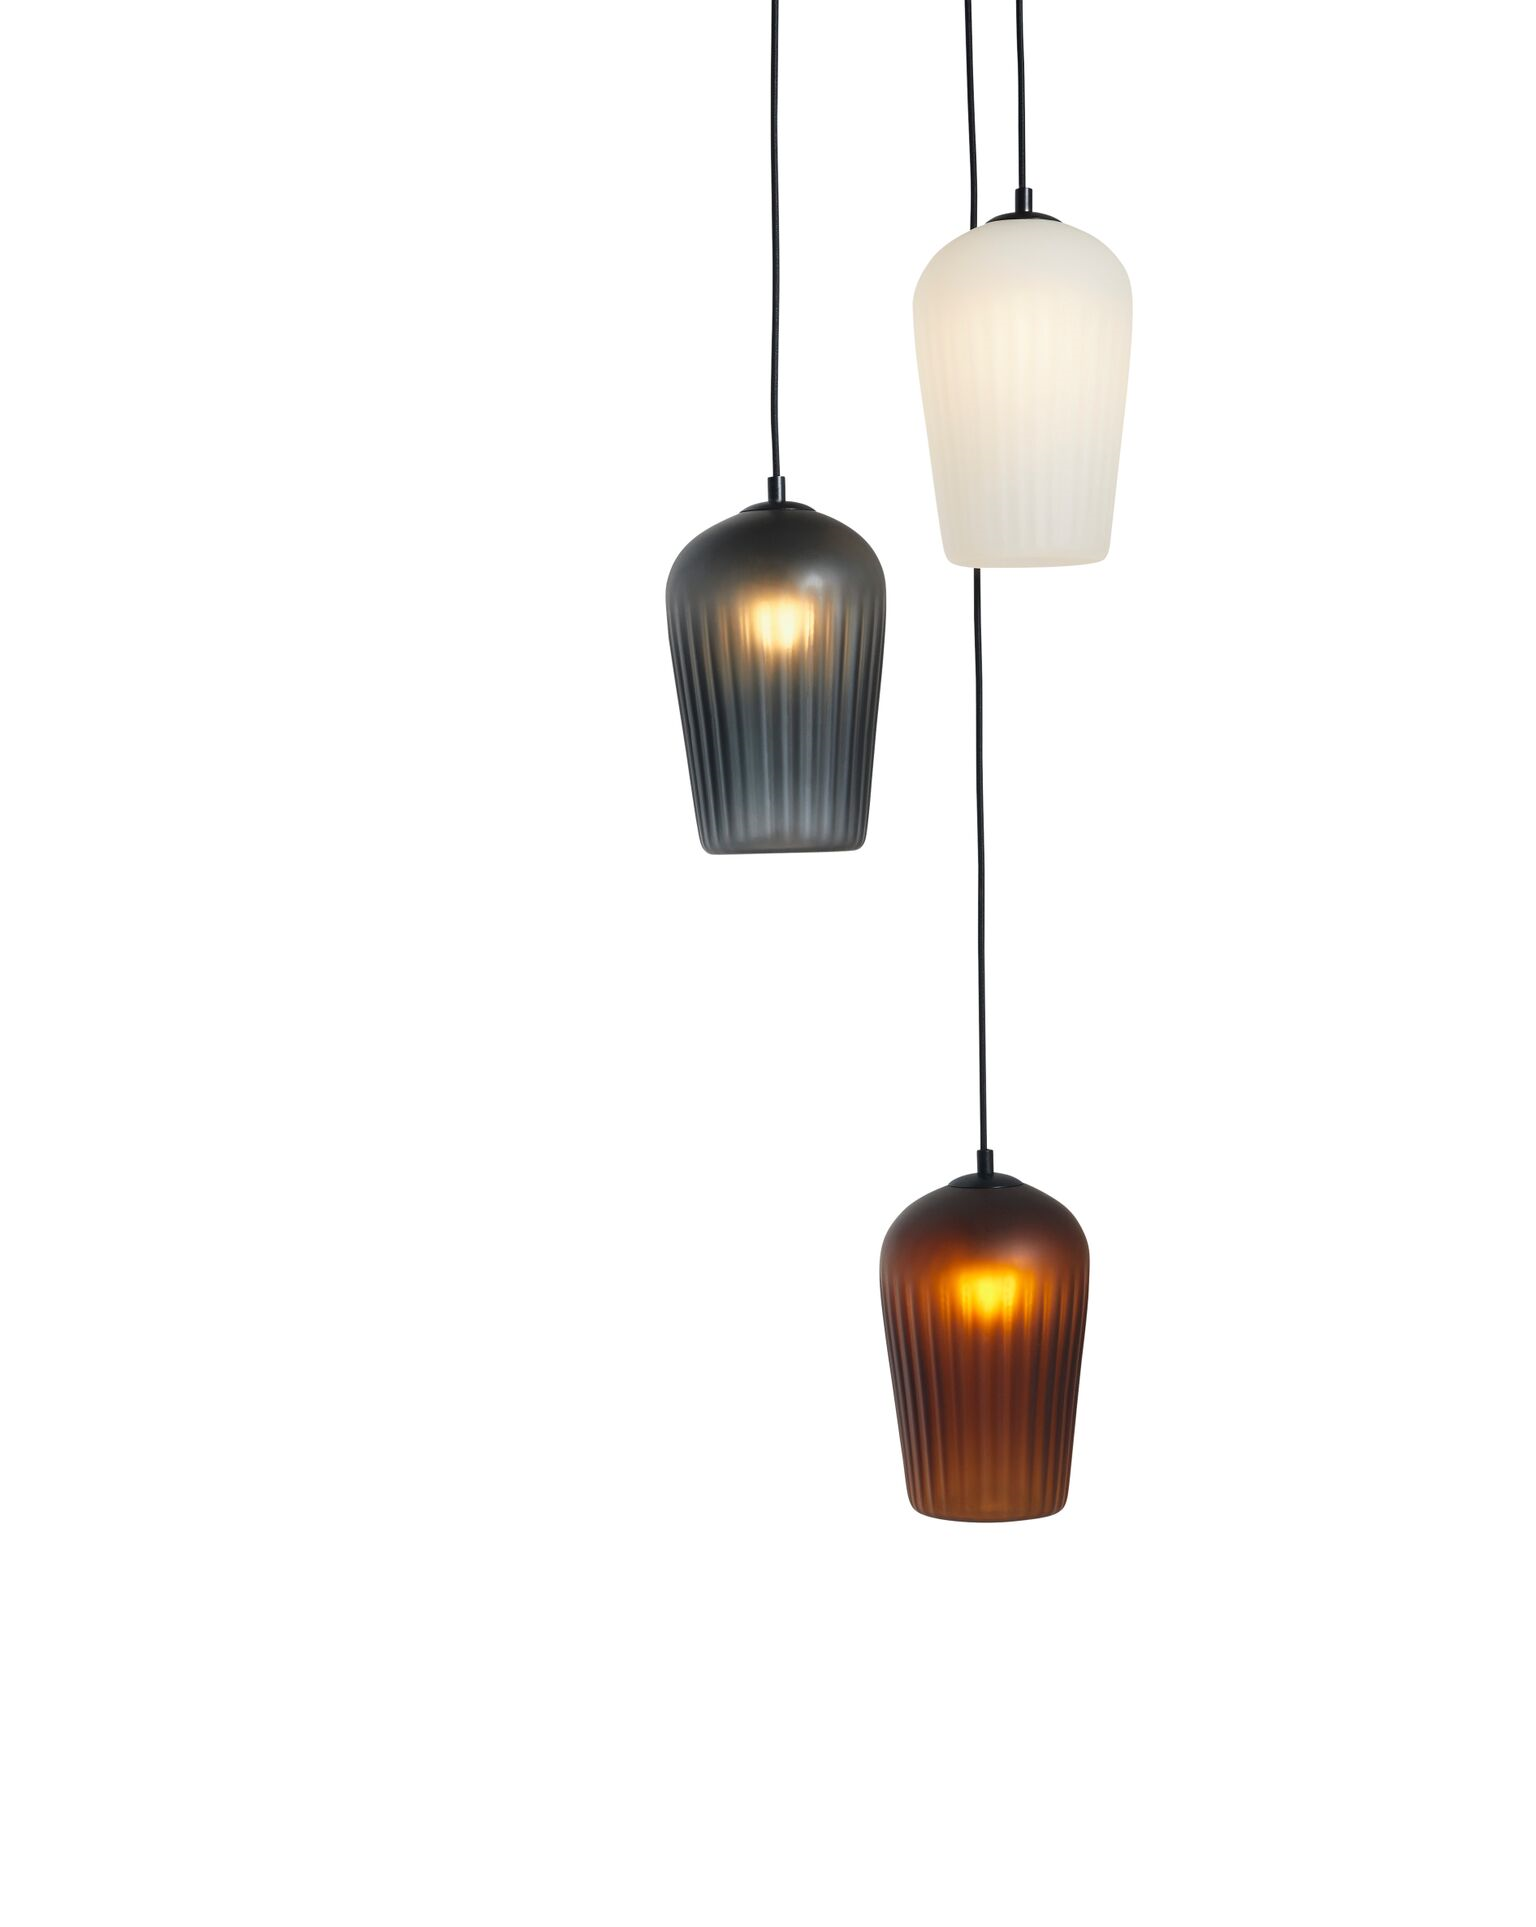 Gallery Of No.10 Pendant By Lumil Local Australian Lighting & Industrial Residential Design Kensington, Melbourne Image 8